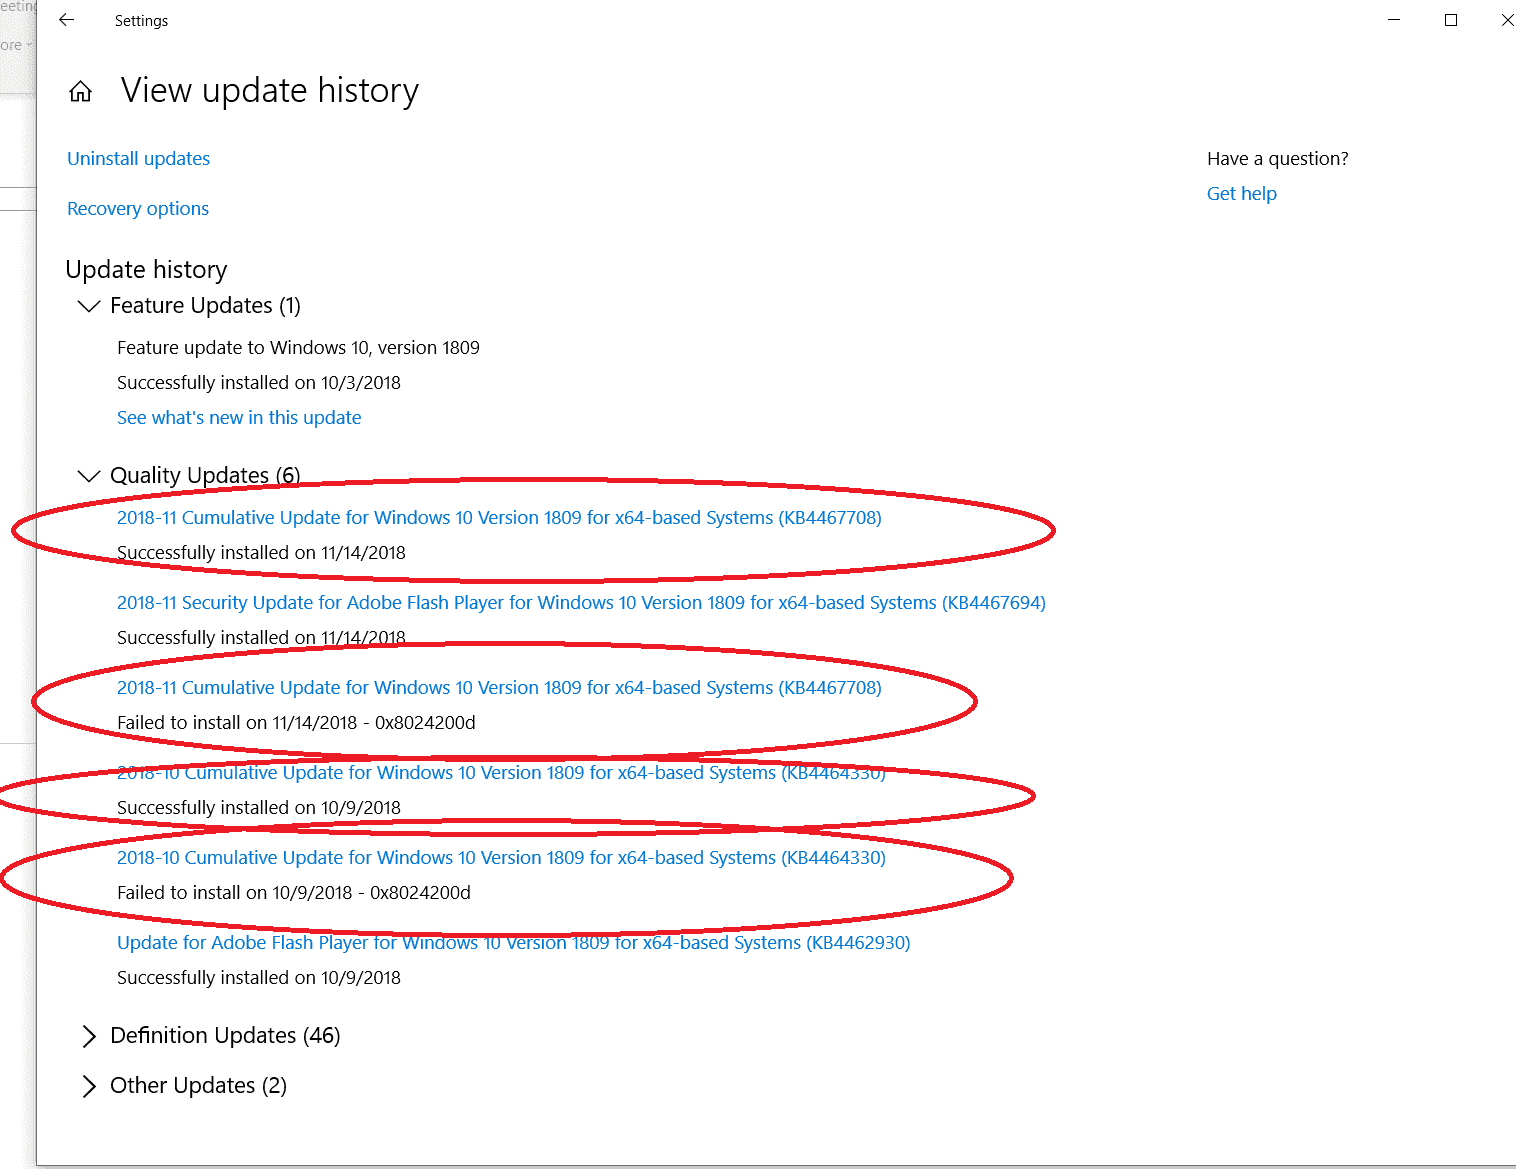 Windows 10 Update - Failed to Install 0x8024200d, then Succesfully